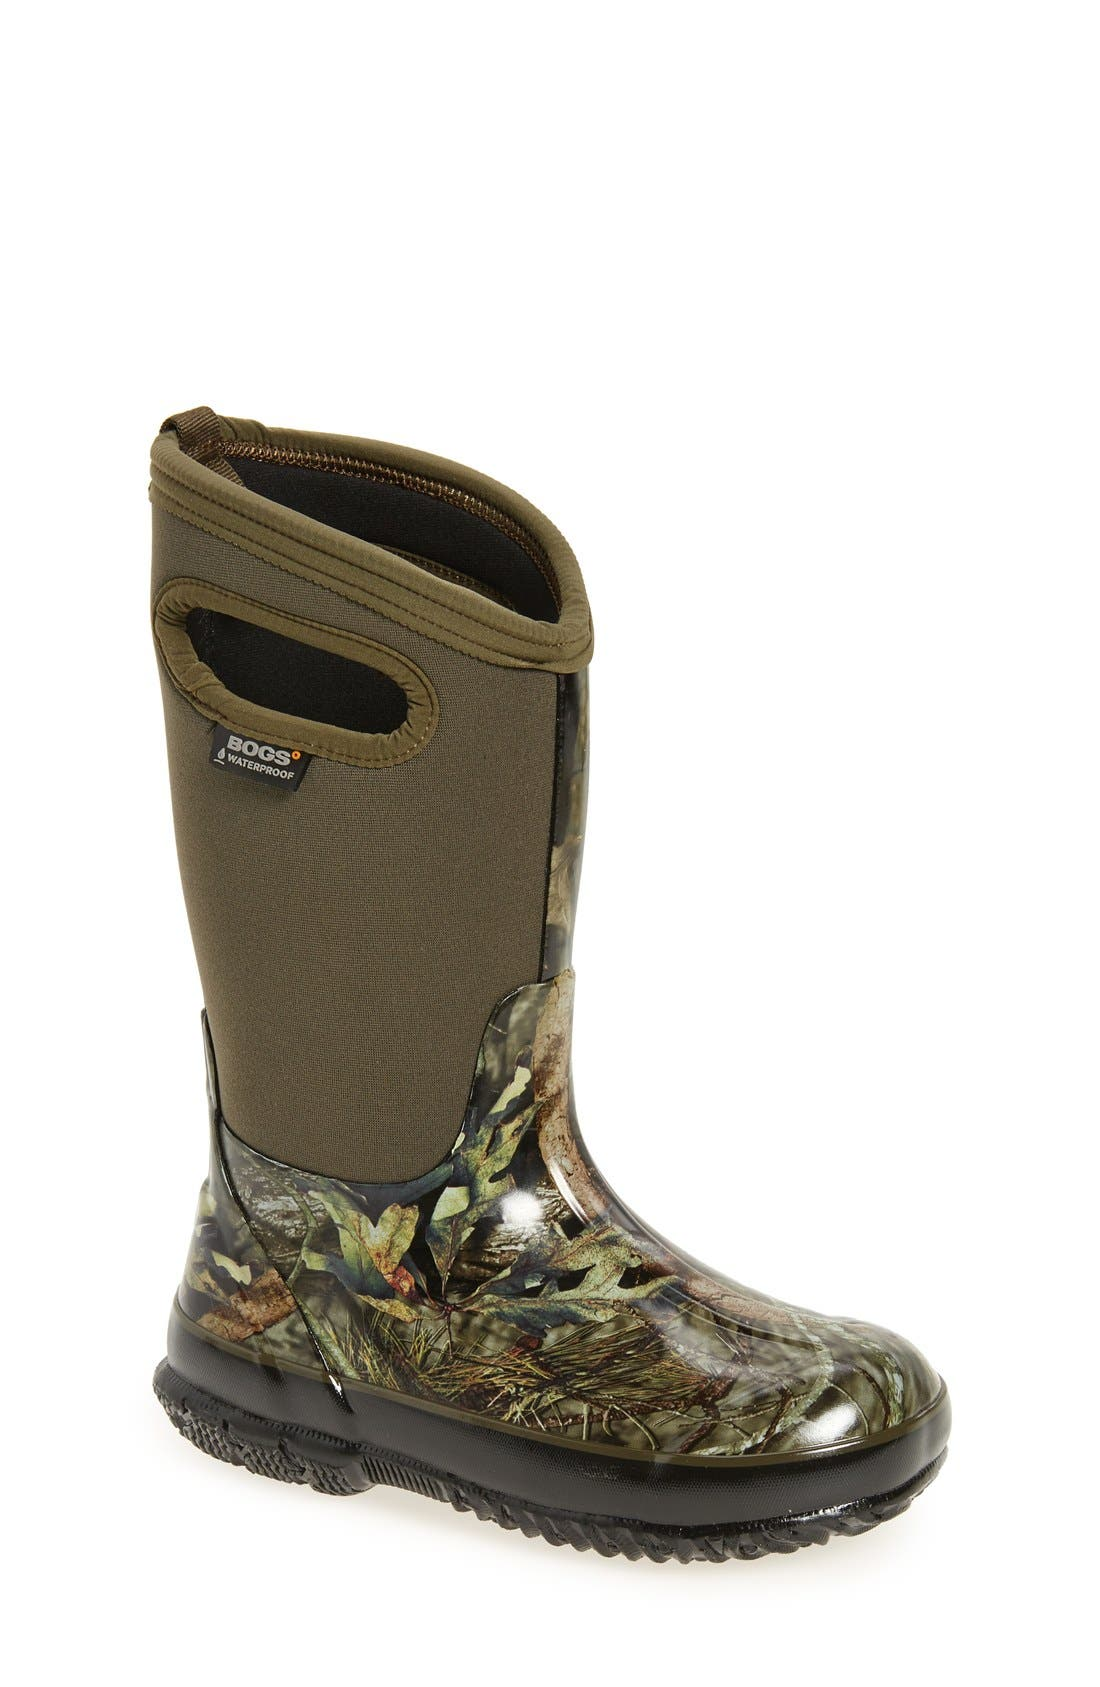 Bogs Classic Camo Insulated Waterproof Boot (Walker, Toddler, Little Kid & Big Kid)